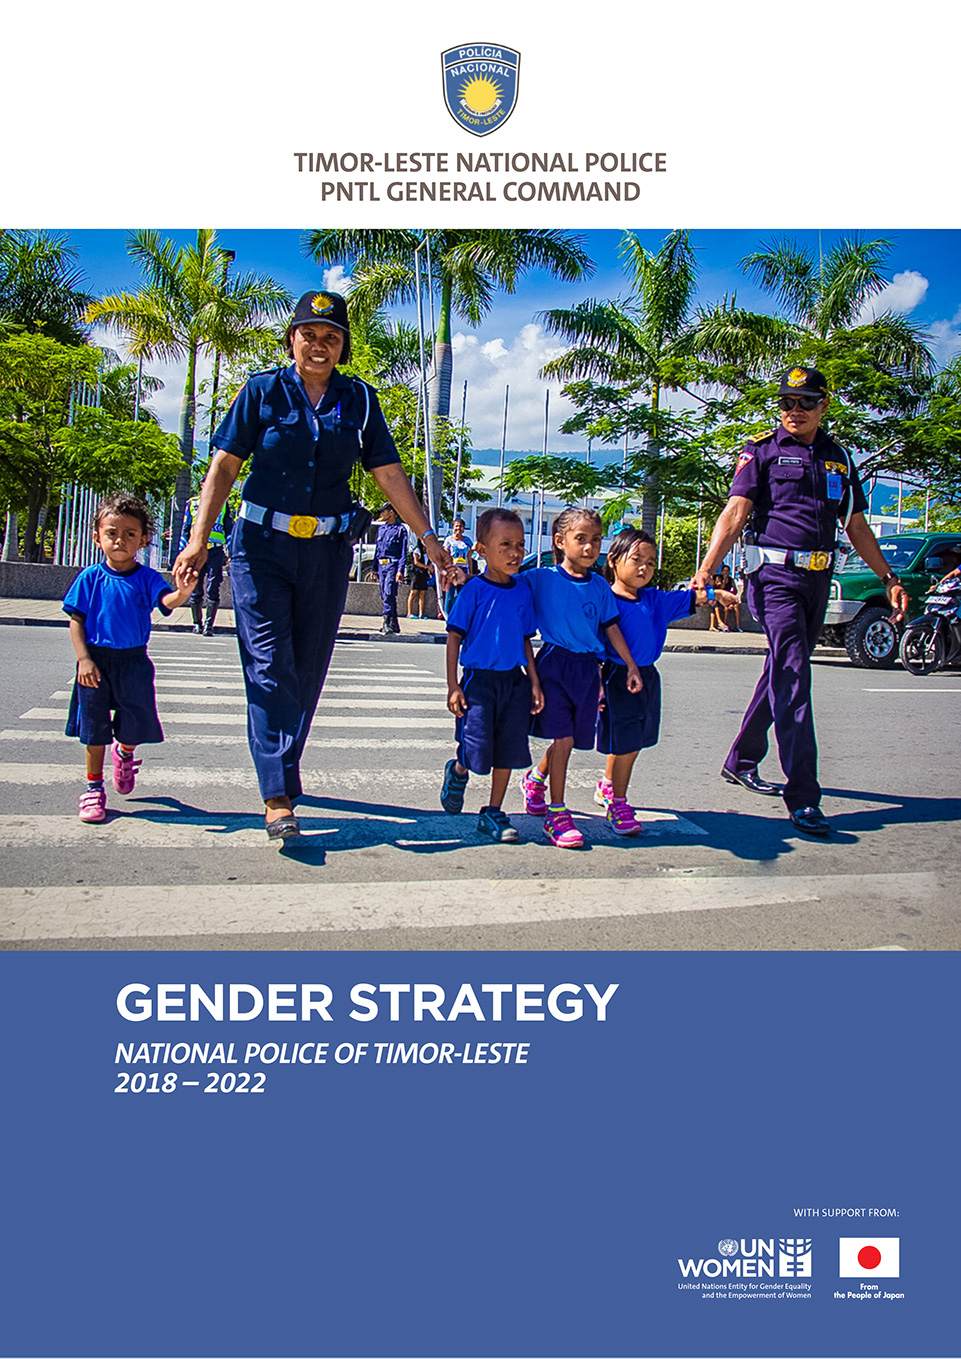 The National Police of Timor-Leste Gender Strategy 2018-2012